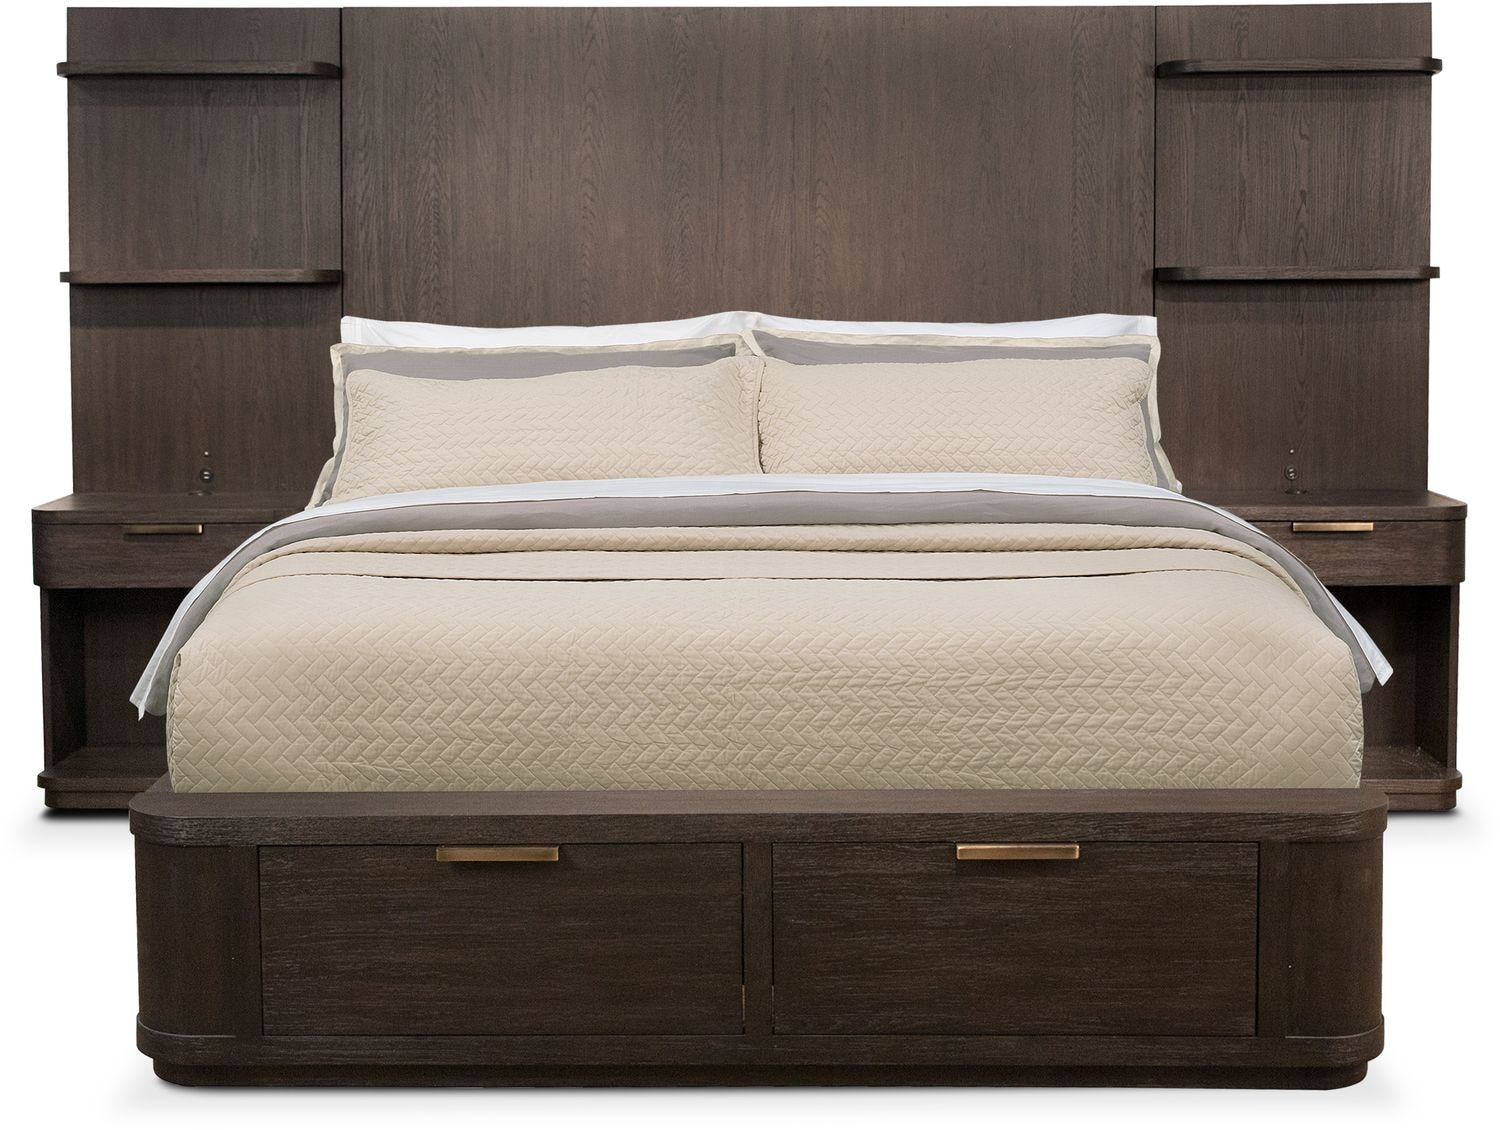 Zoom Room Bed Reviews Malibu Queen Tall Storage Wall Bed Umber American Signature